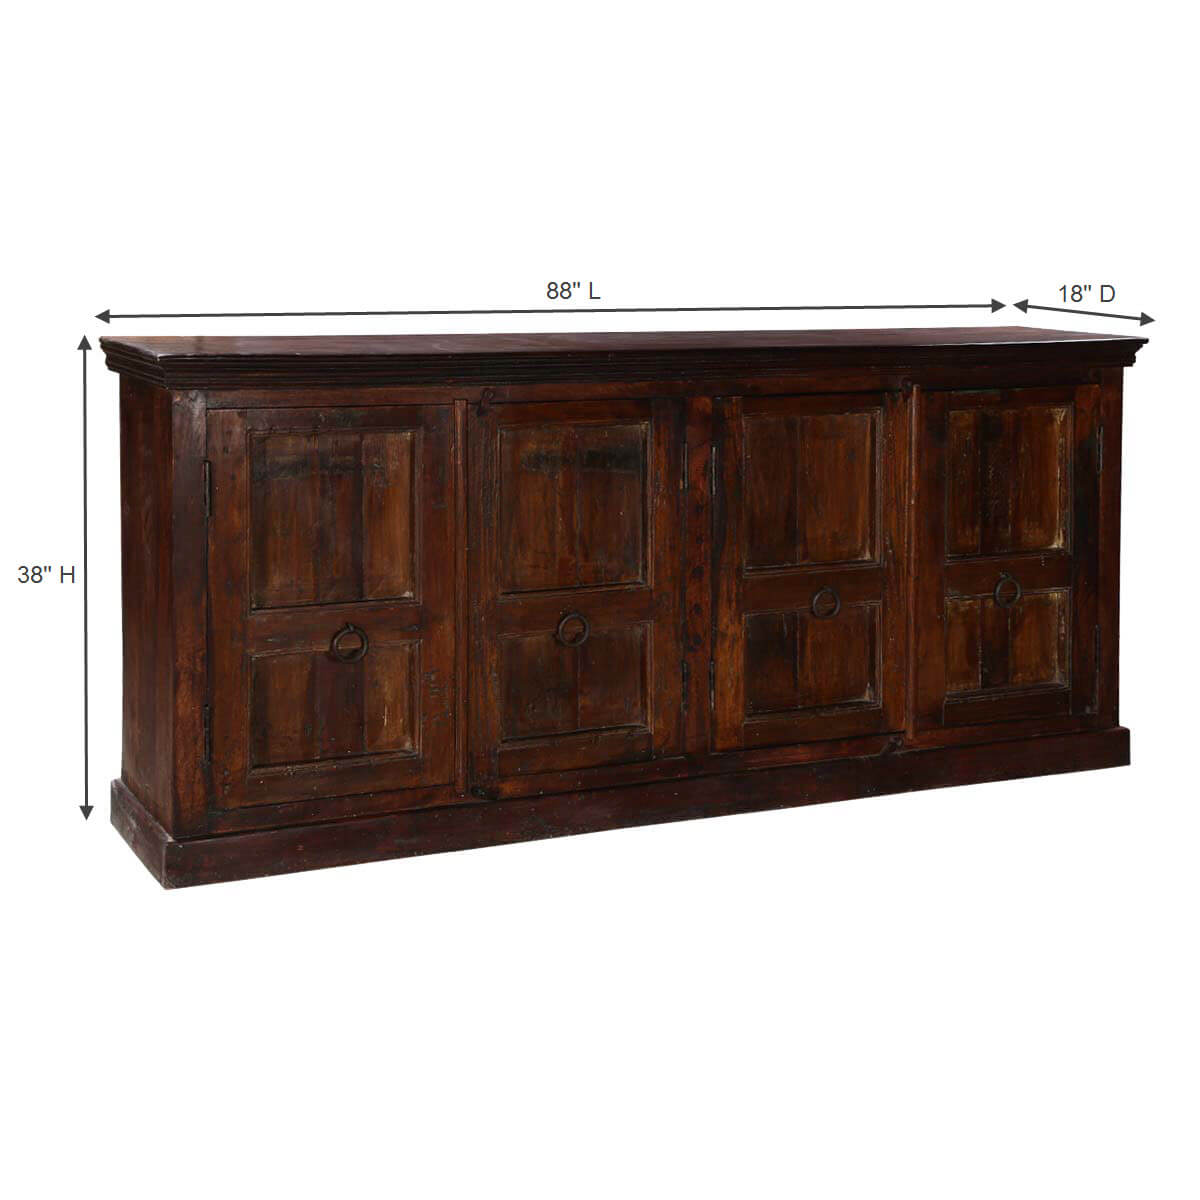 willamette 88 4 door rustic dark wood 4 shelf buffet sideboard